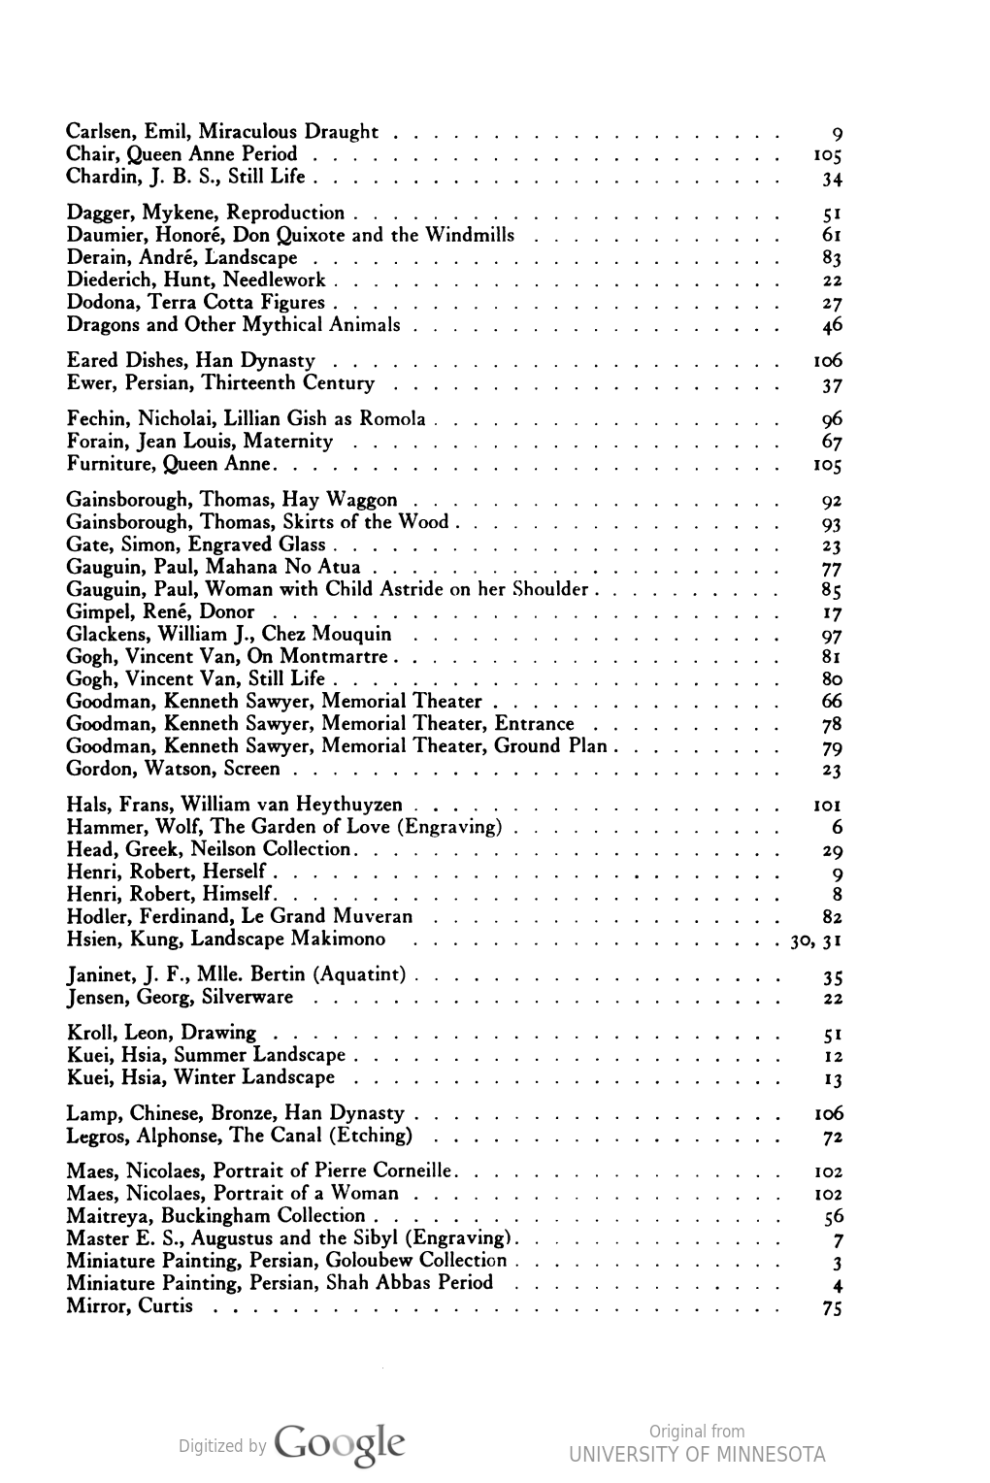 """Bulletin of the Art Institute of Chicago, Chicago, IL, """"The Walter H. Schulze Memorial Gallery of Paintings"""", January, 1925, volume 19, number 1, pages 7-9, illustrated: b&w on page 9"""